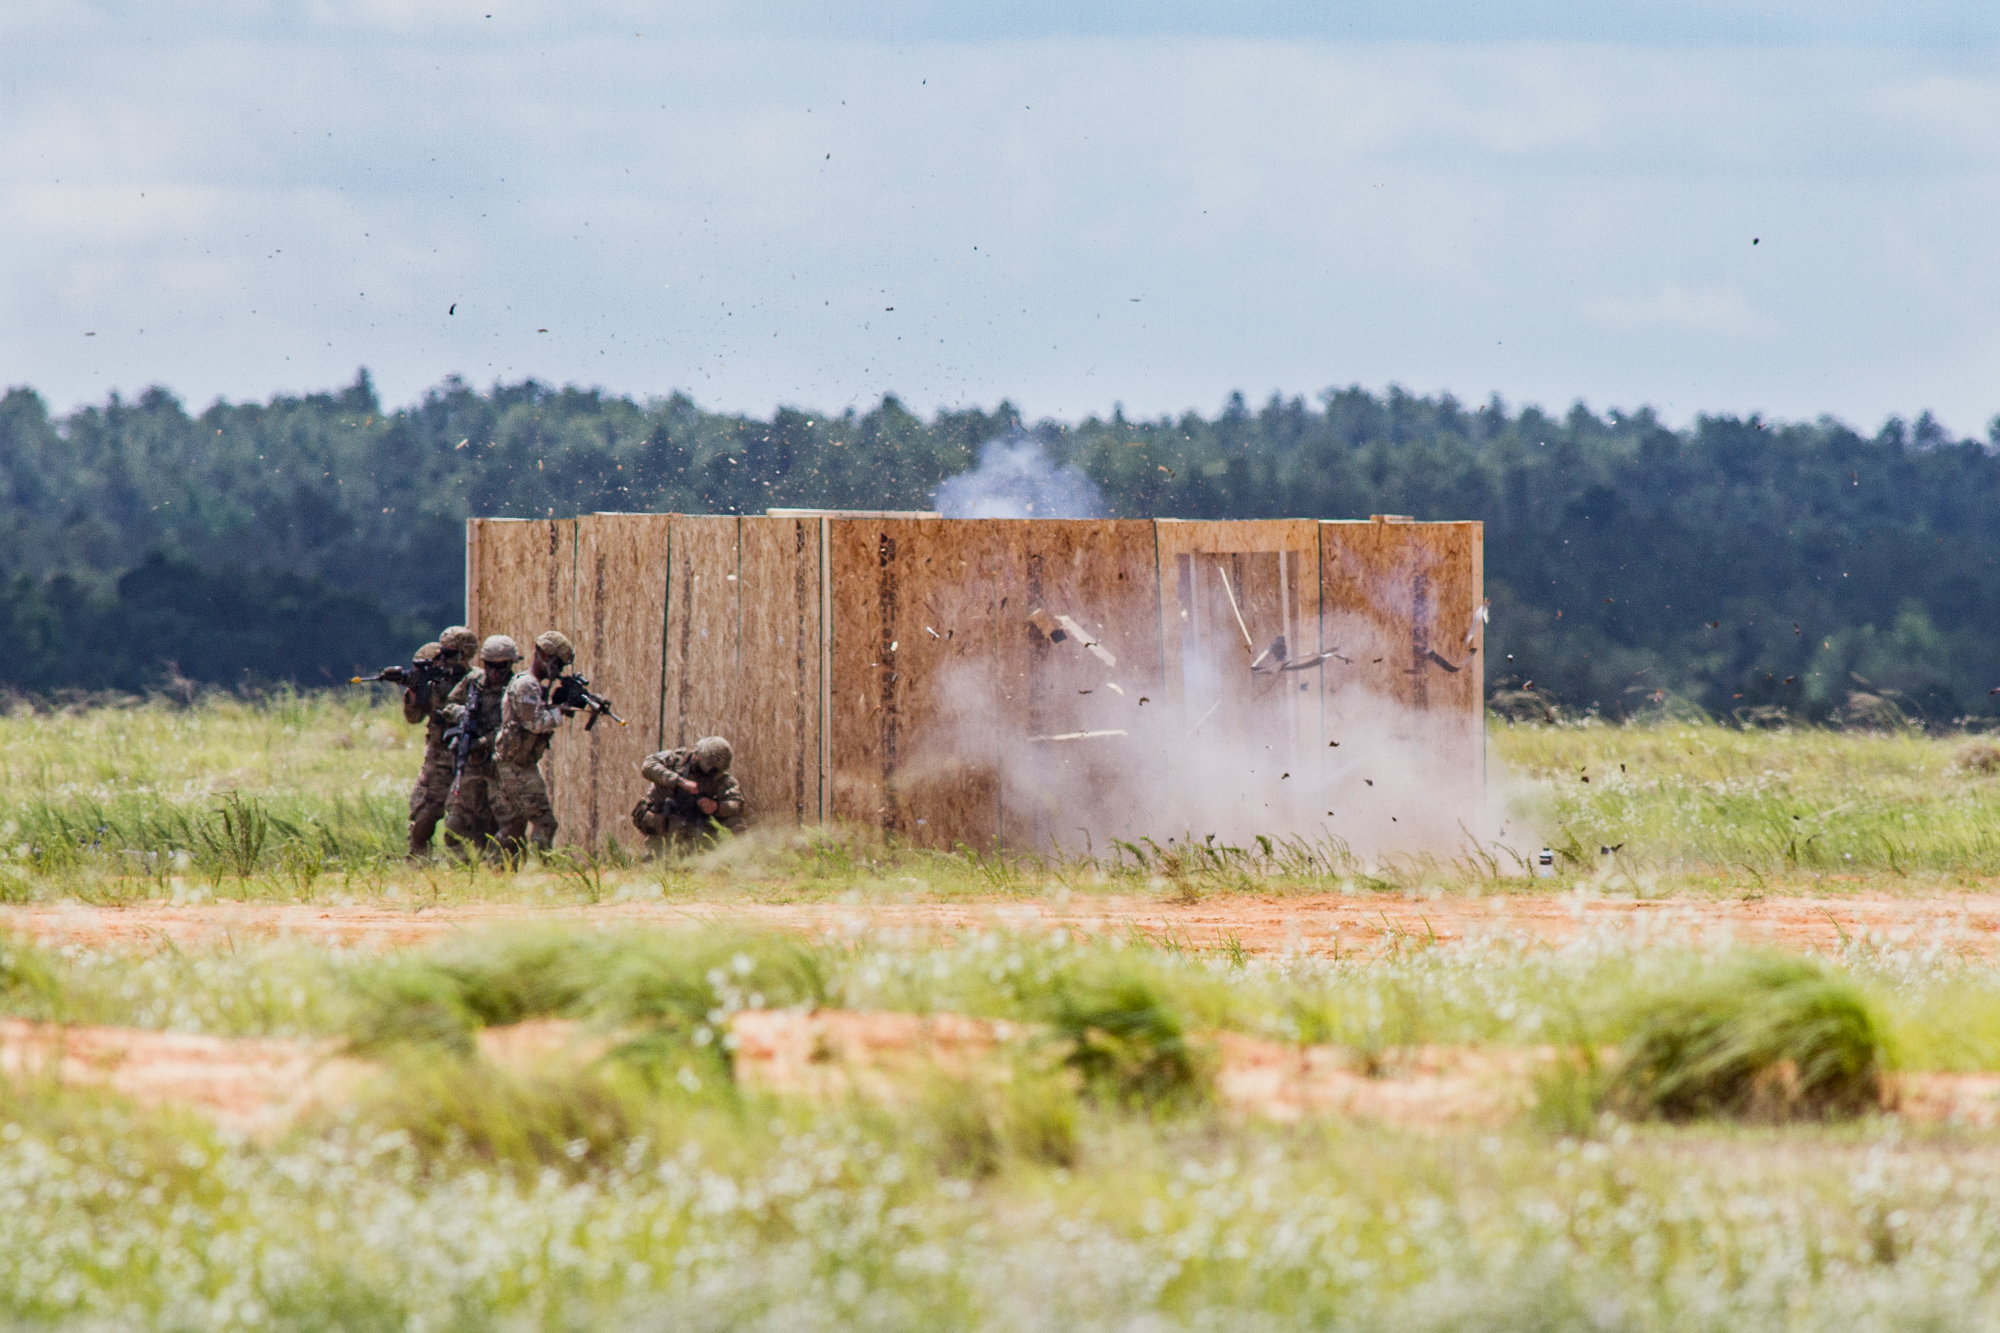 Paratroopers from the 82nd Airborne Division demonstrate a breaching charge on a walled compound as part the Airborne Review at Sicily Drop Zone at Fort Bragg, N.C., on Thursday, May 25, 2017.